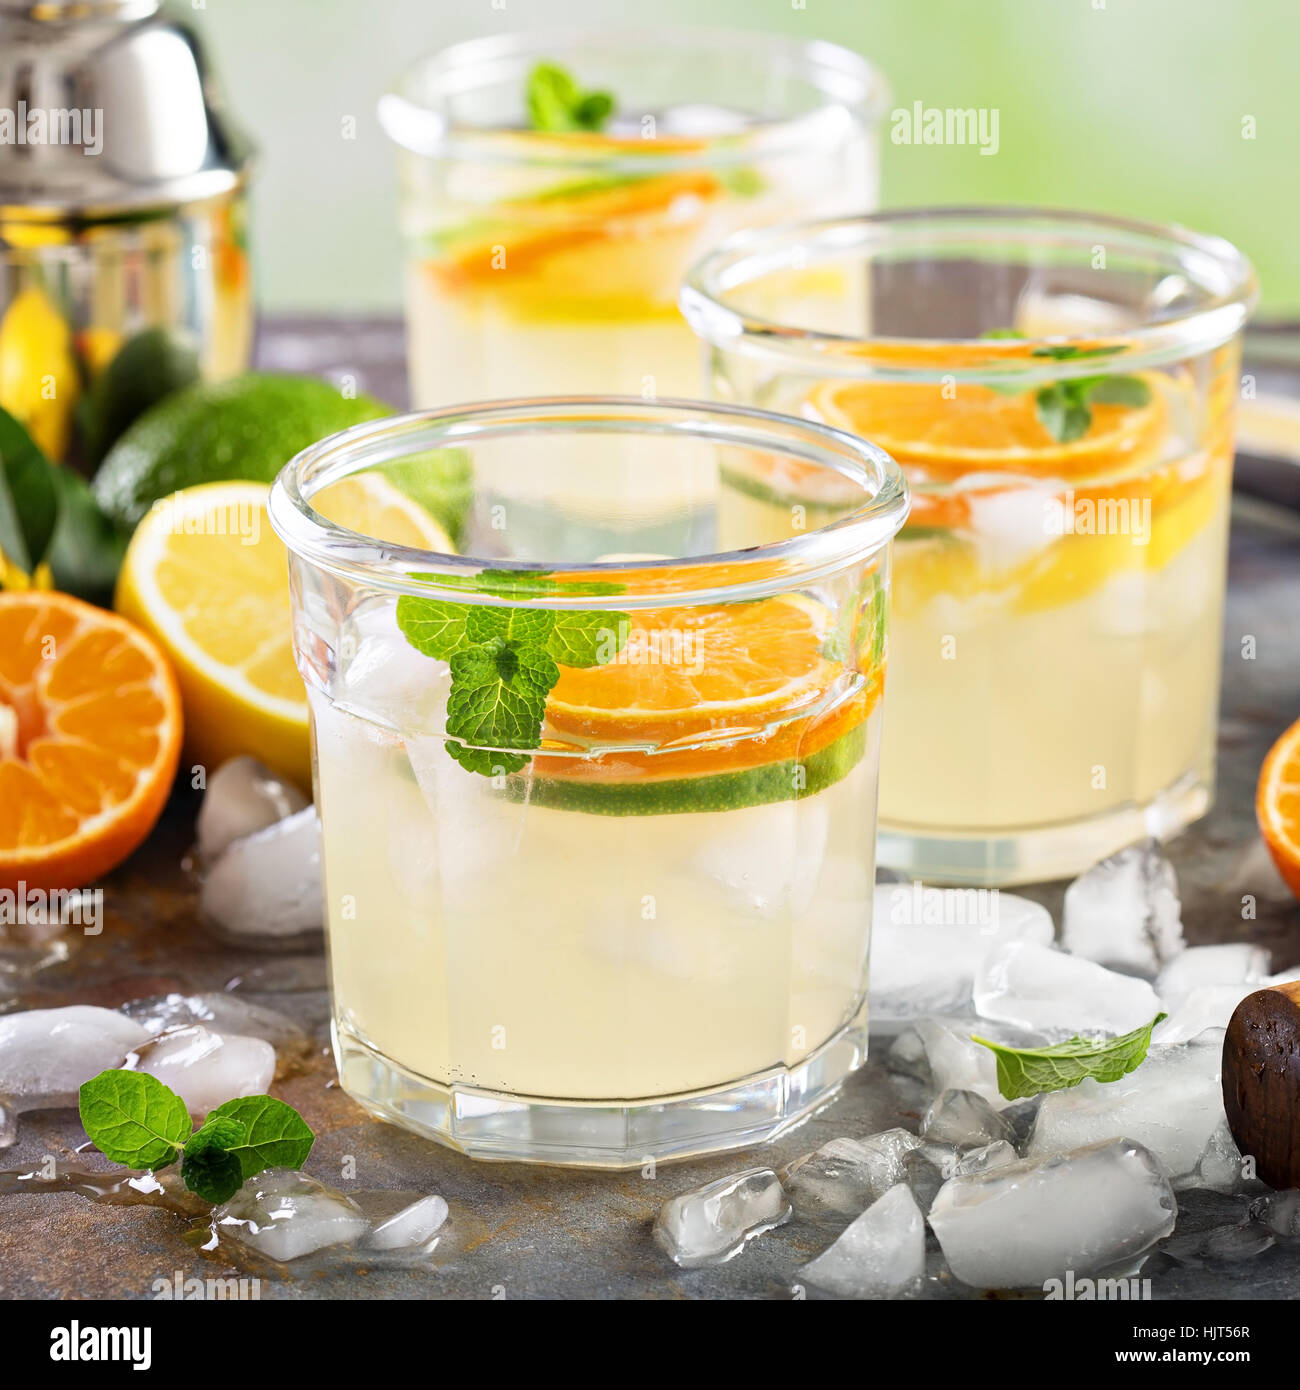 Refreshing summer cocktail with citrus fruits - Stock Image